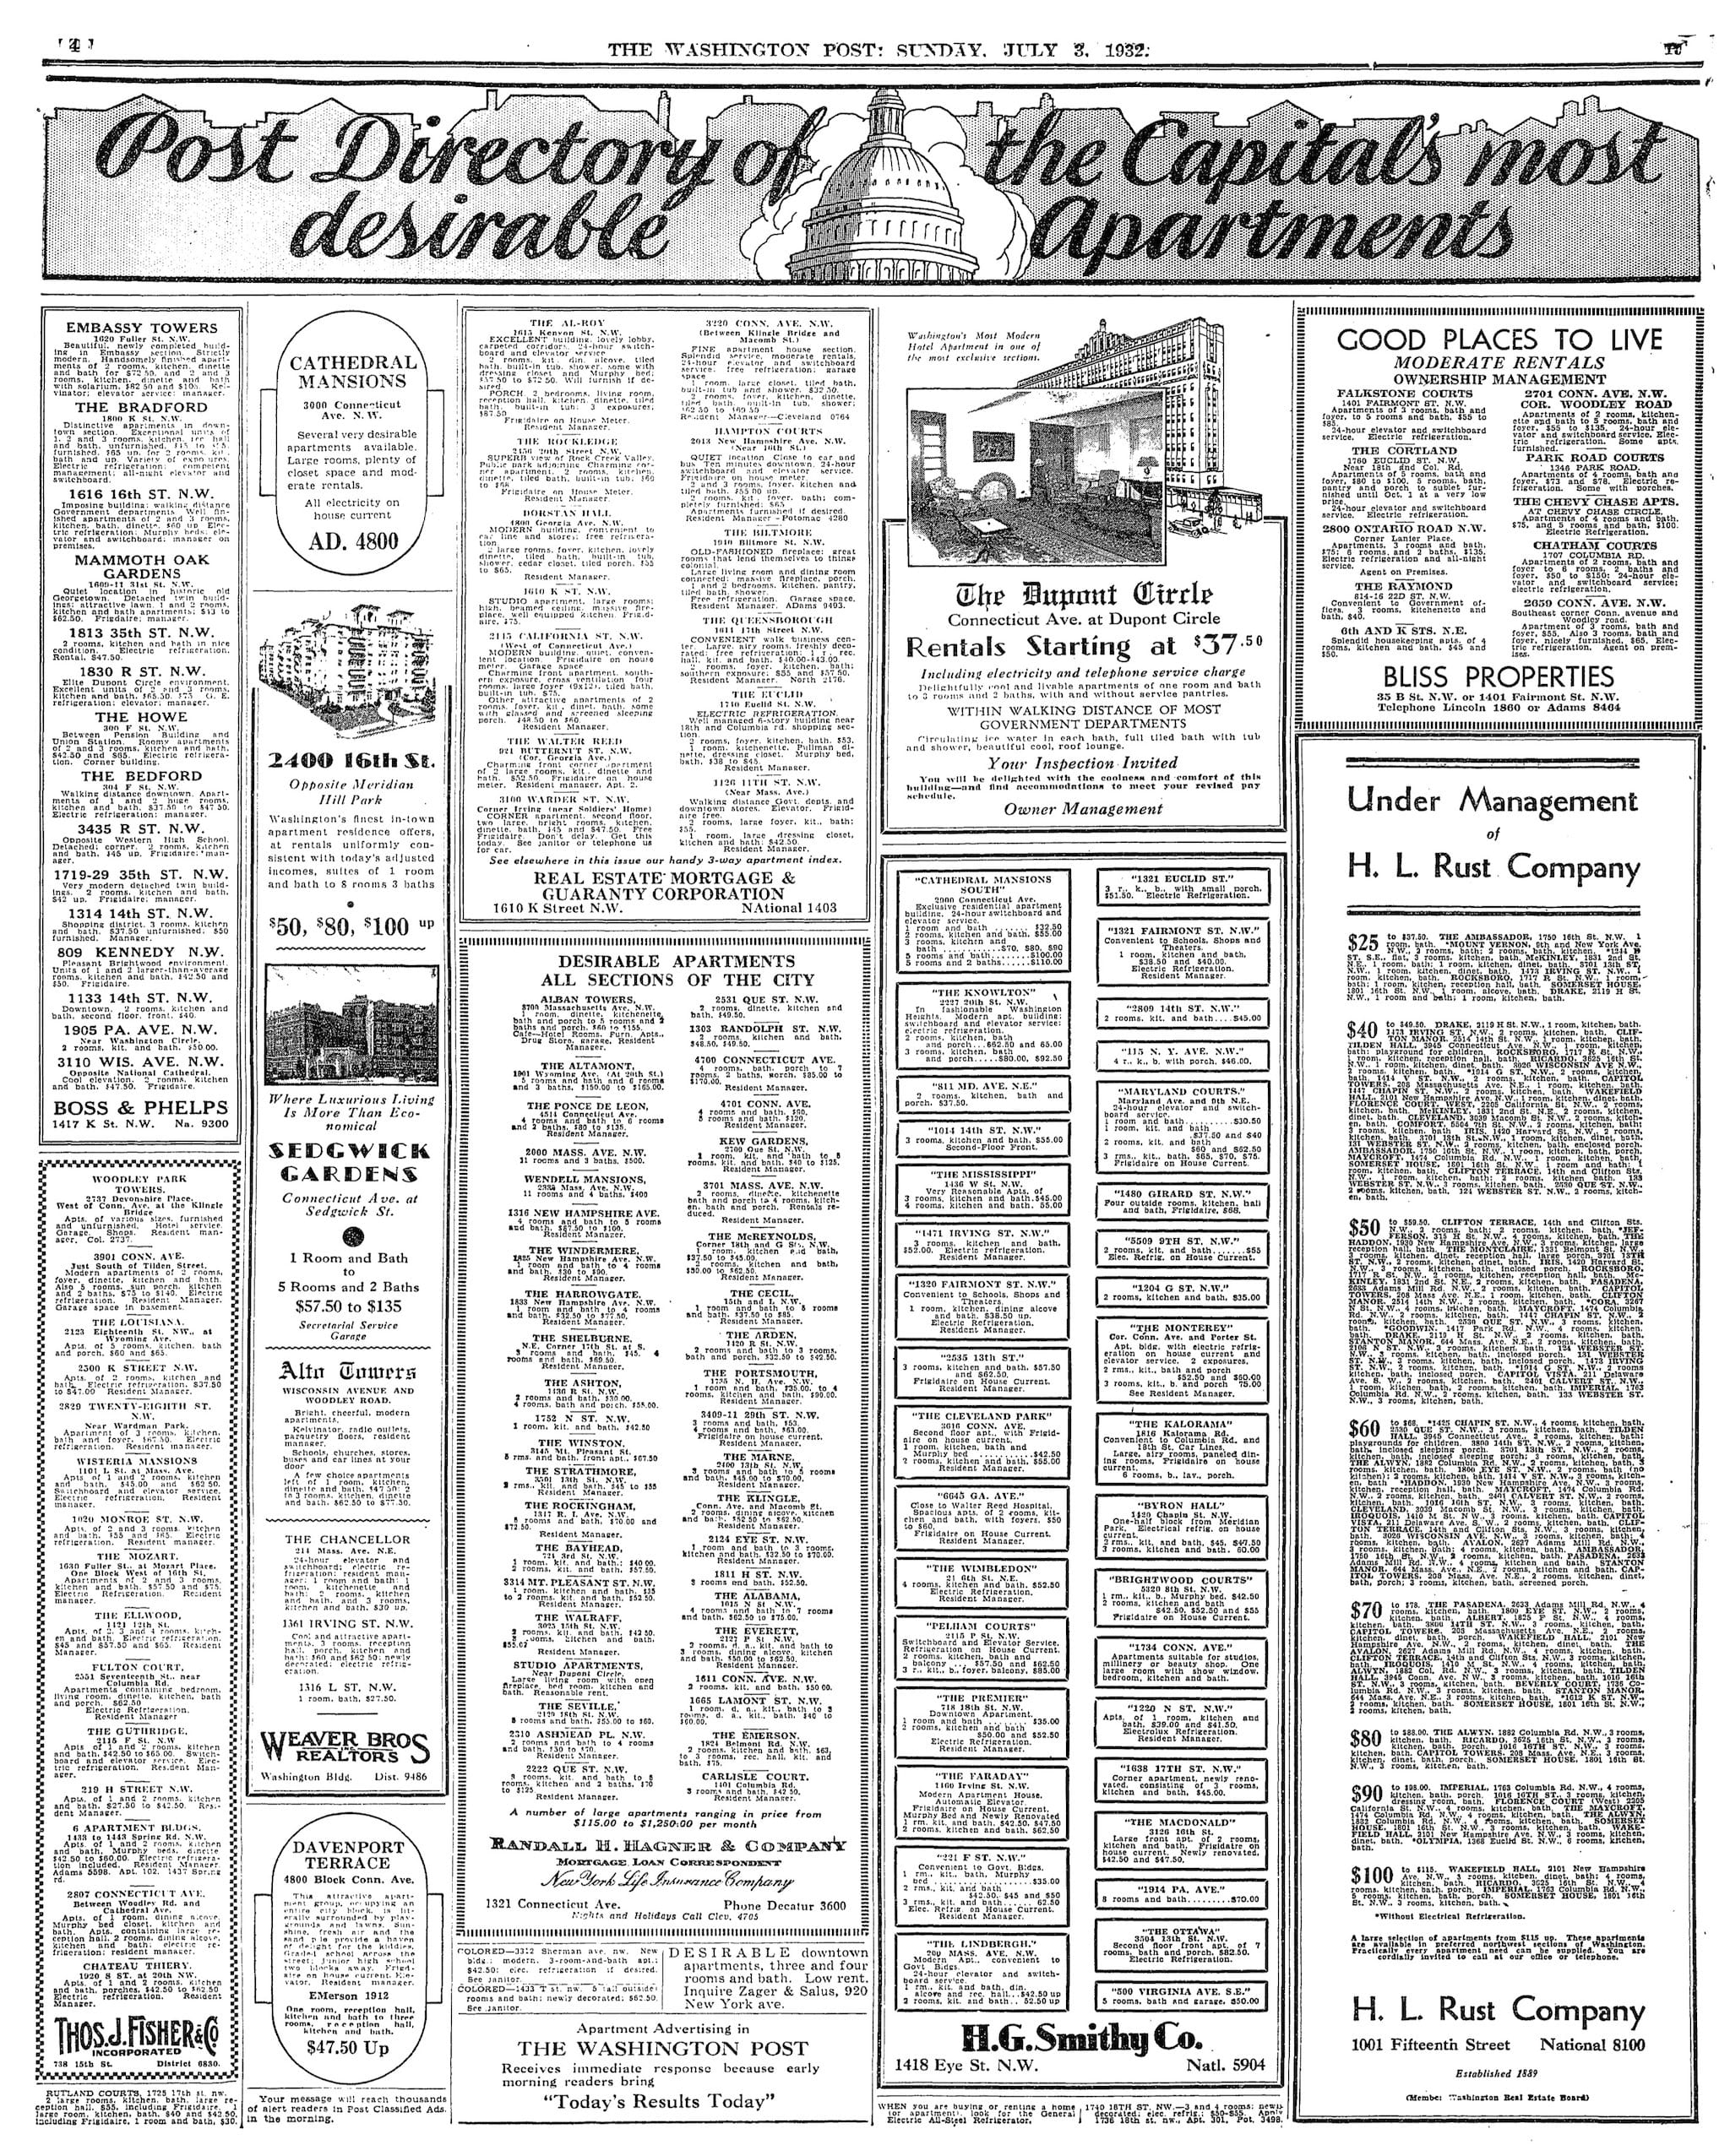 1932 Washington Post apartment listings